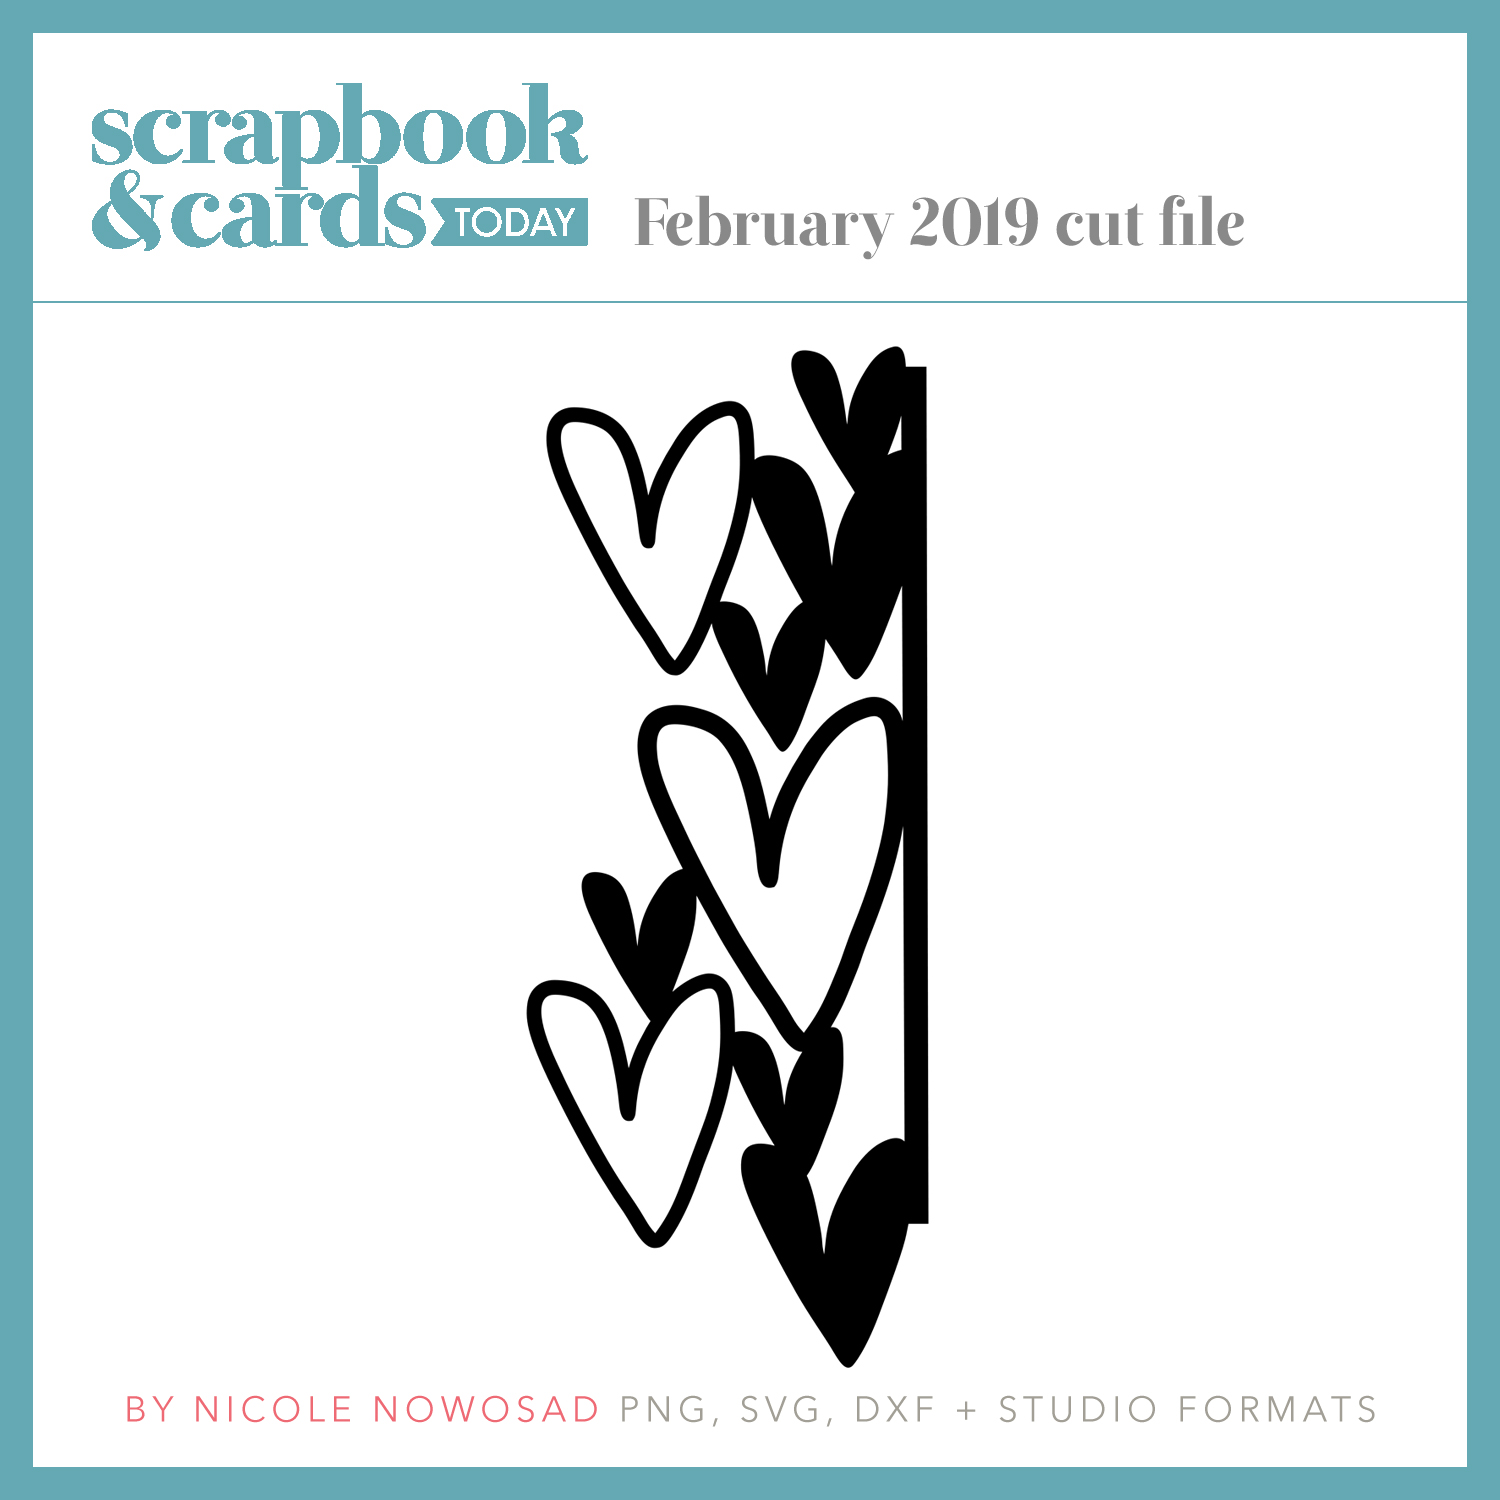 February 2019 free cut file from Scrapbook & Cards Today